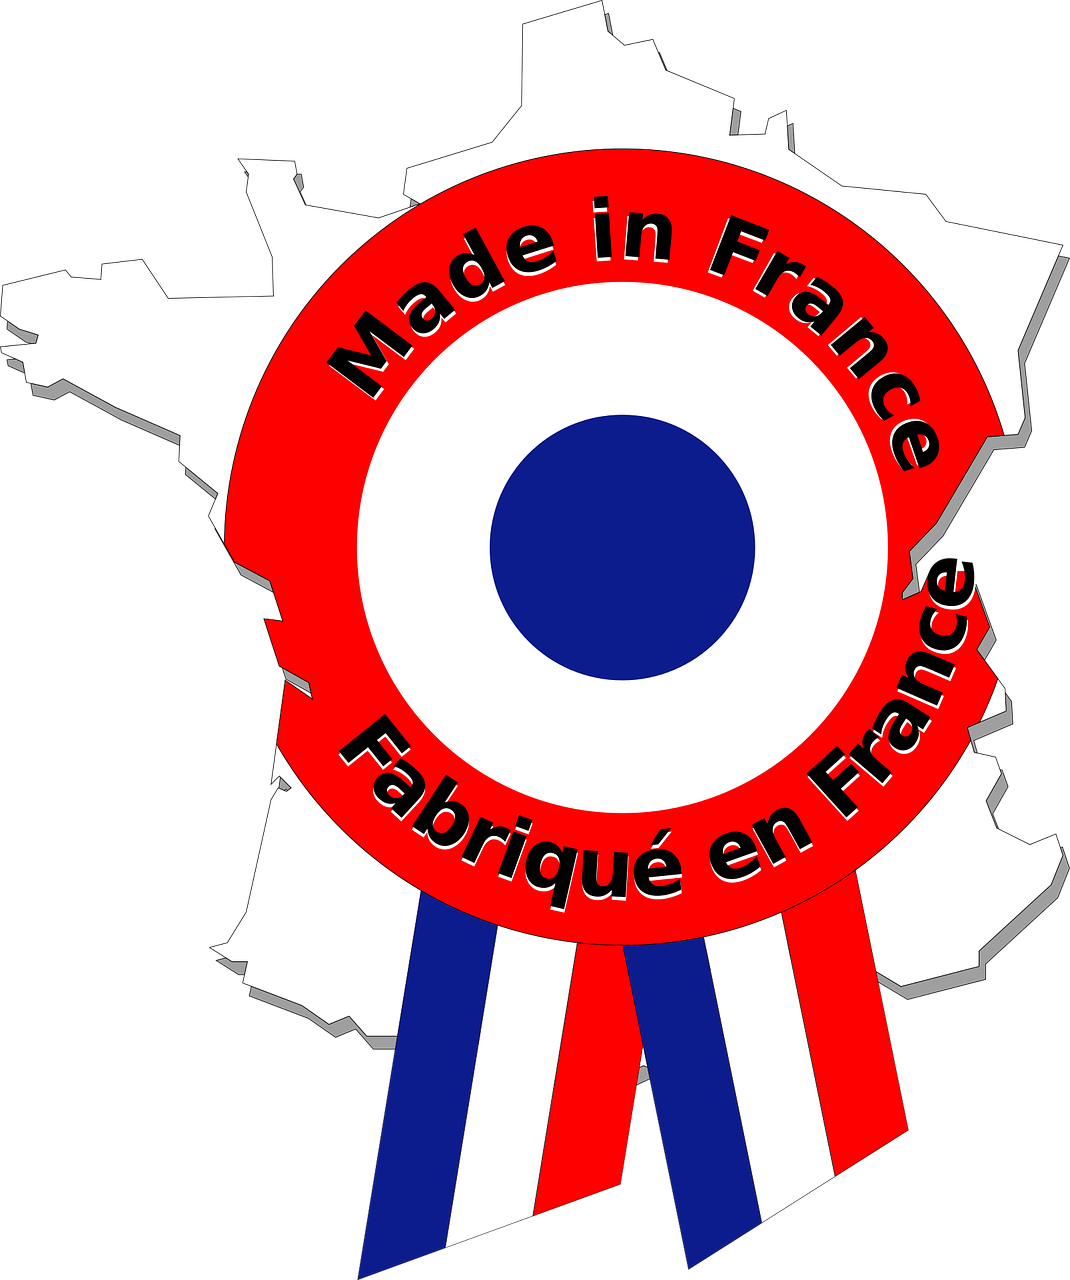 Produits made in France - La consommation locale